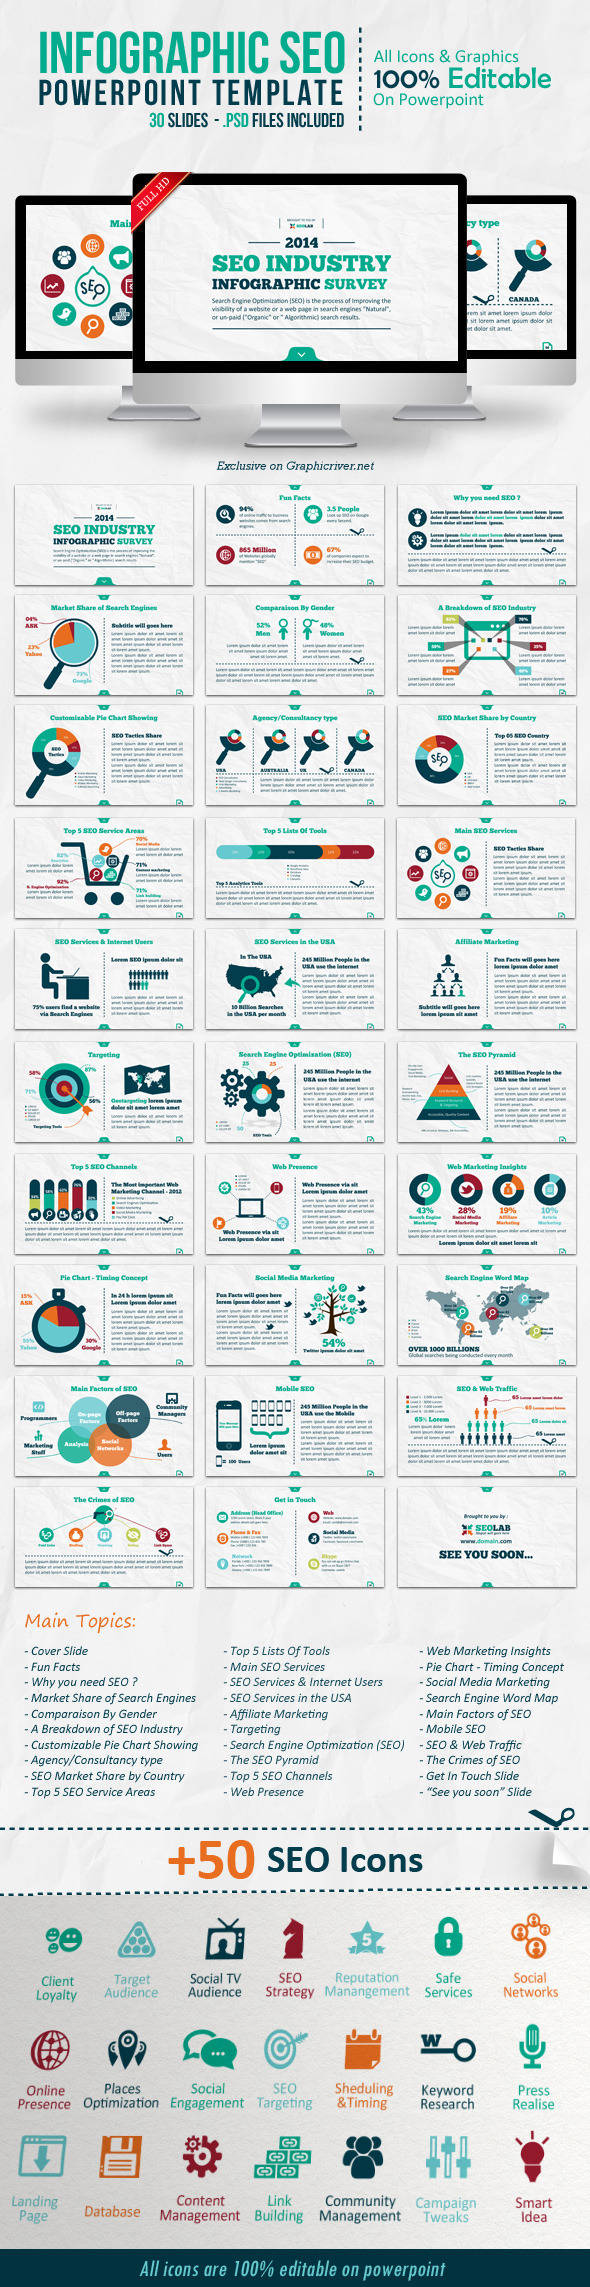 Infographic SEO Powerpoint Template - Creative PowerPoint Templates